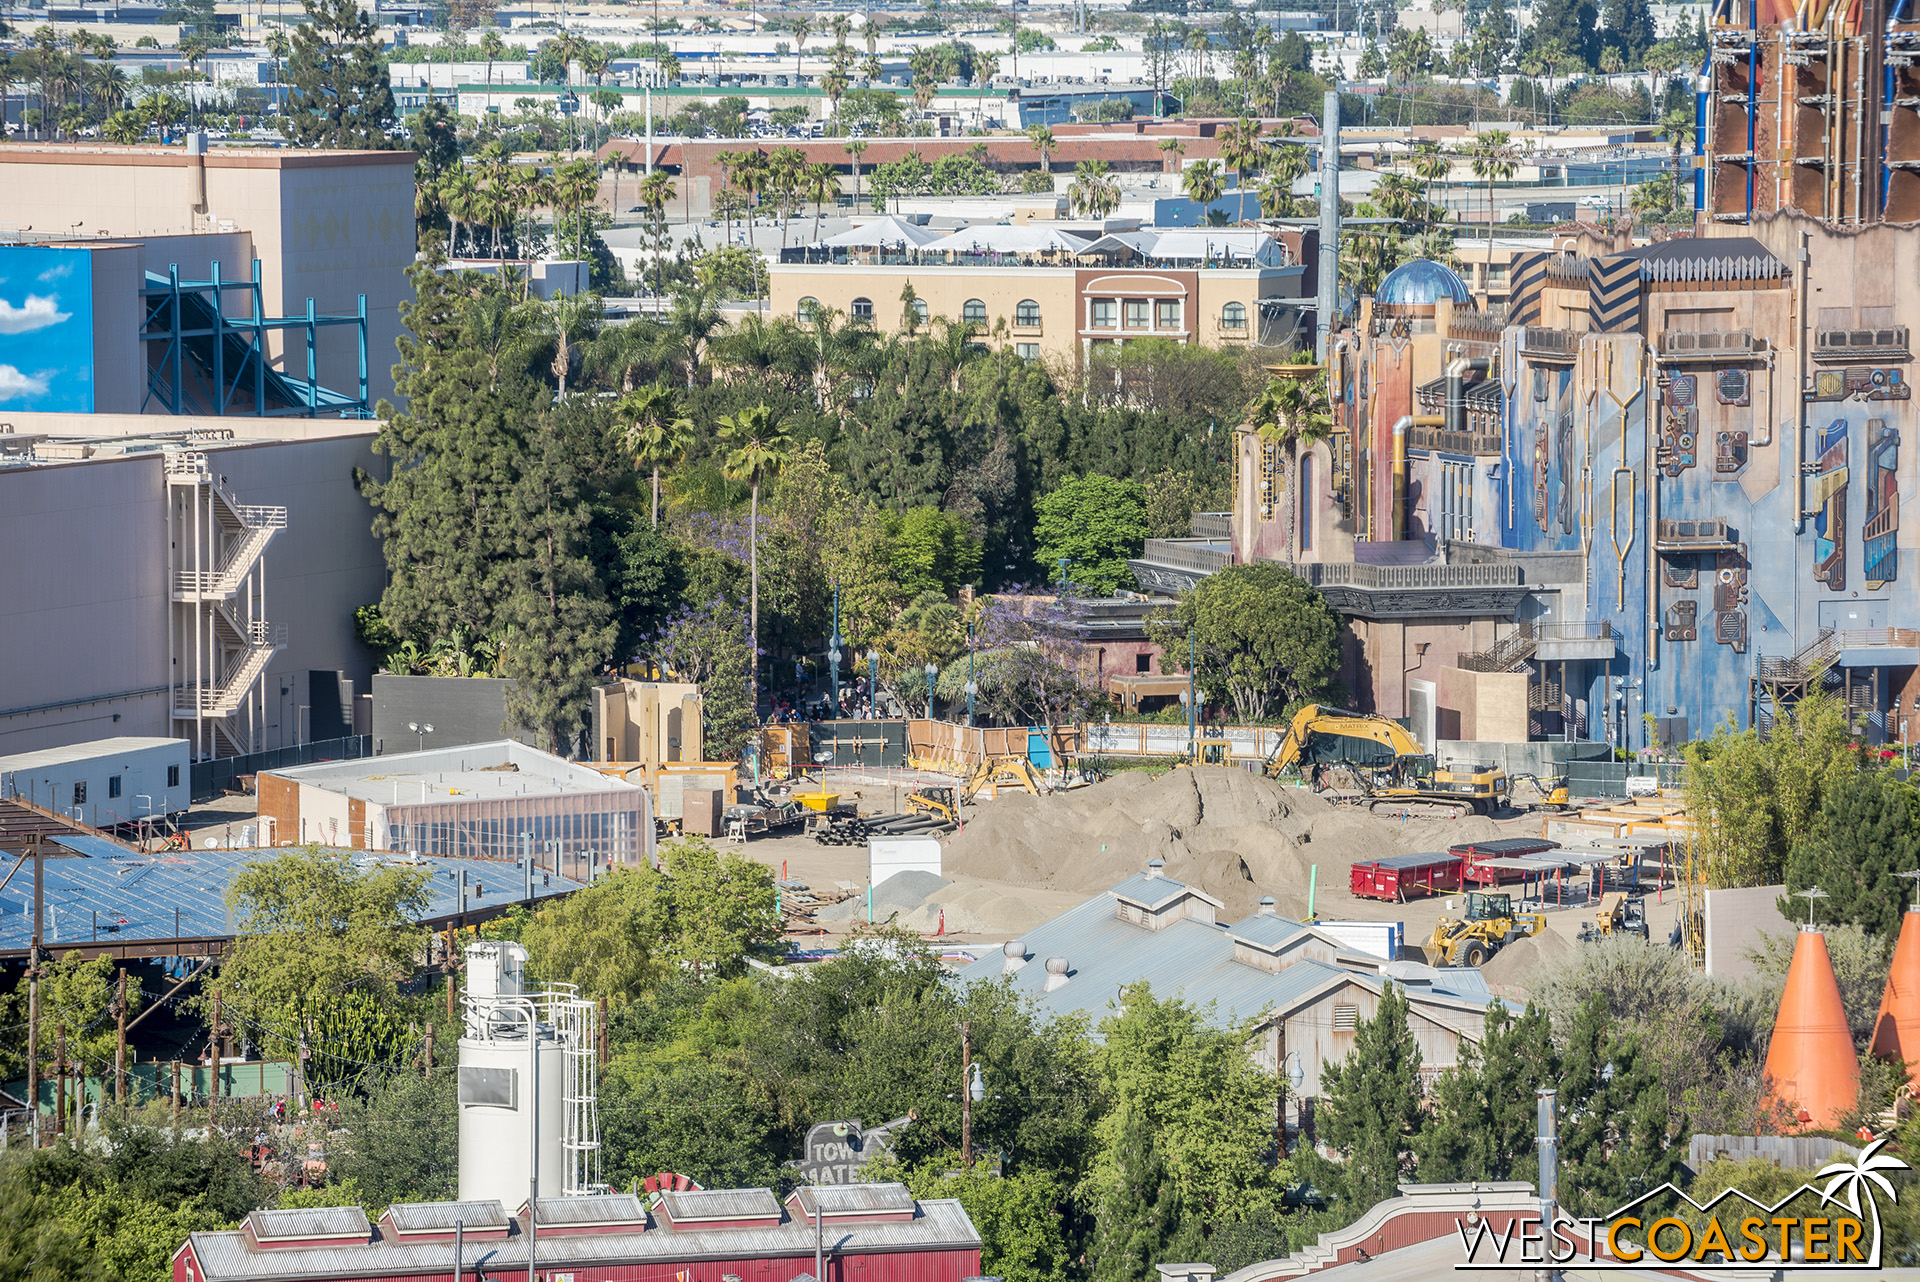 And either a new building put up or I think the remnants of the Bug's Land toilet building (tough to gauge exactly based on perspective).